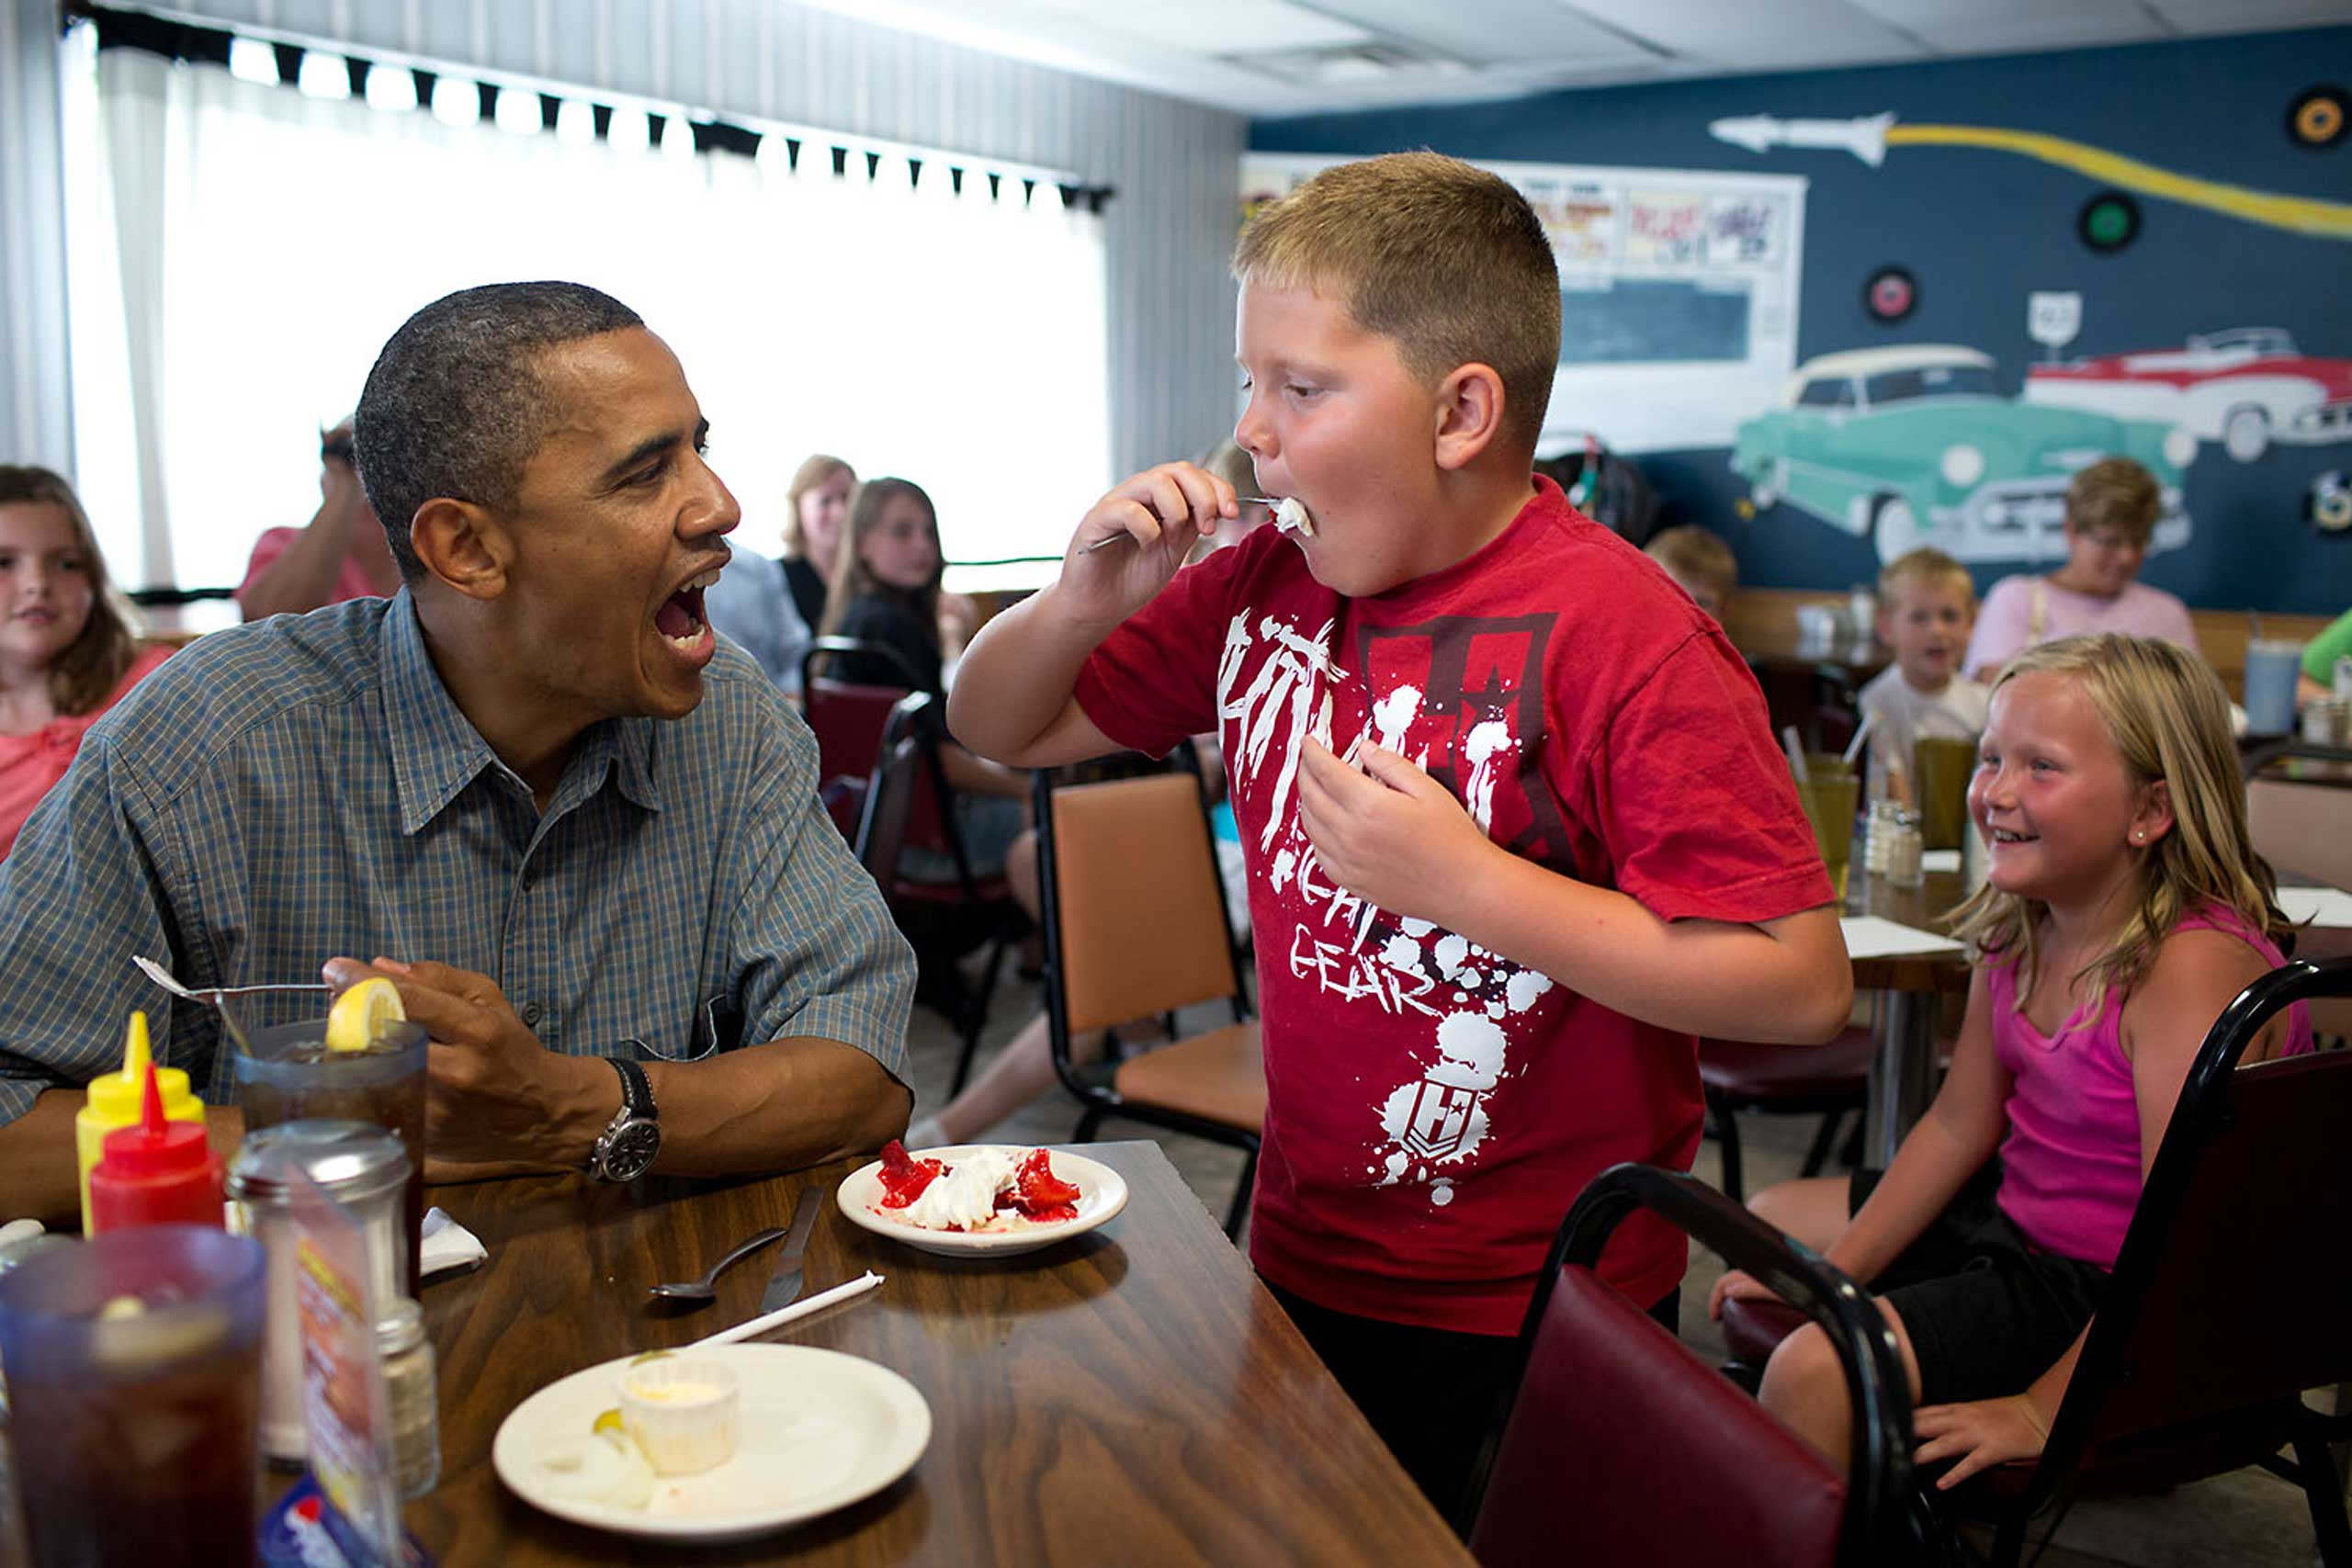 President Obama shares a piece of strawberry pie with a young patron at Kozy Corners, a local diner in Oak Harbor, Ohio, July 5, 2012.